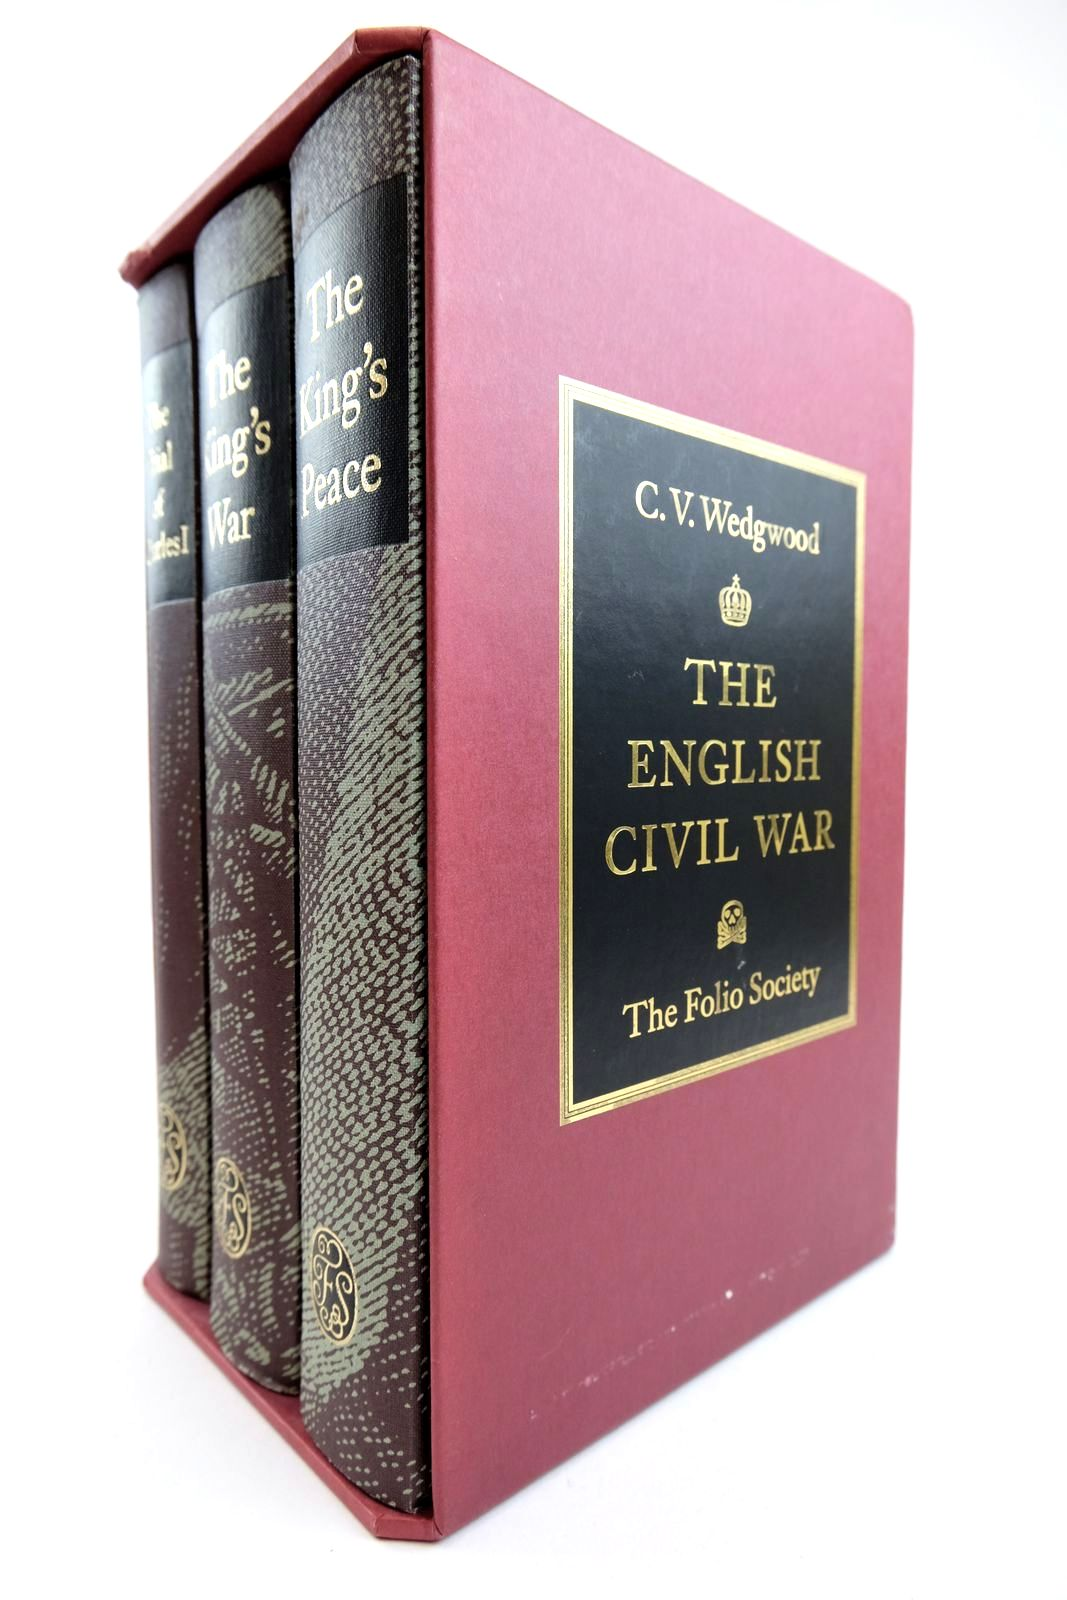 Photo of THE ENGLISH CIVIL WAR (3 VOLUMES) written by Wedgwood, C.V. published by Folio Society (STOCK CODE: 2132385)  for sale by Stella & Rose's Books